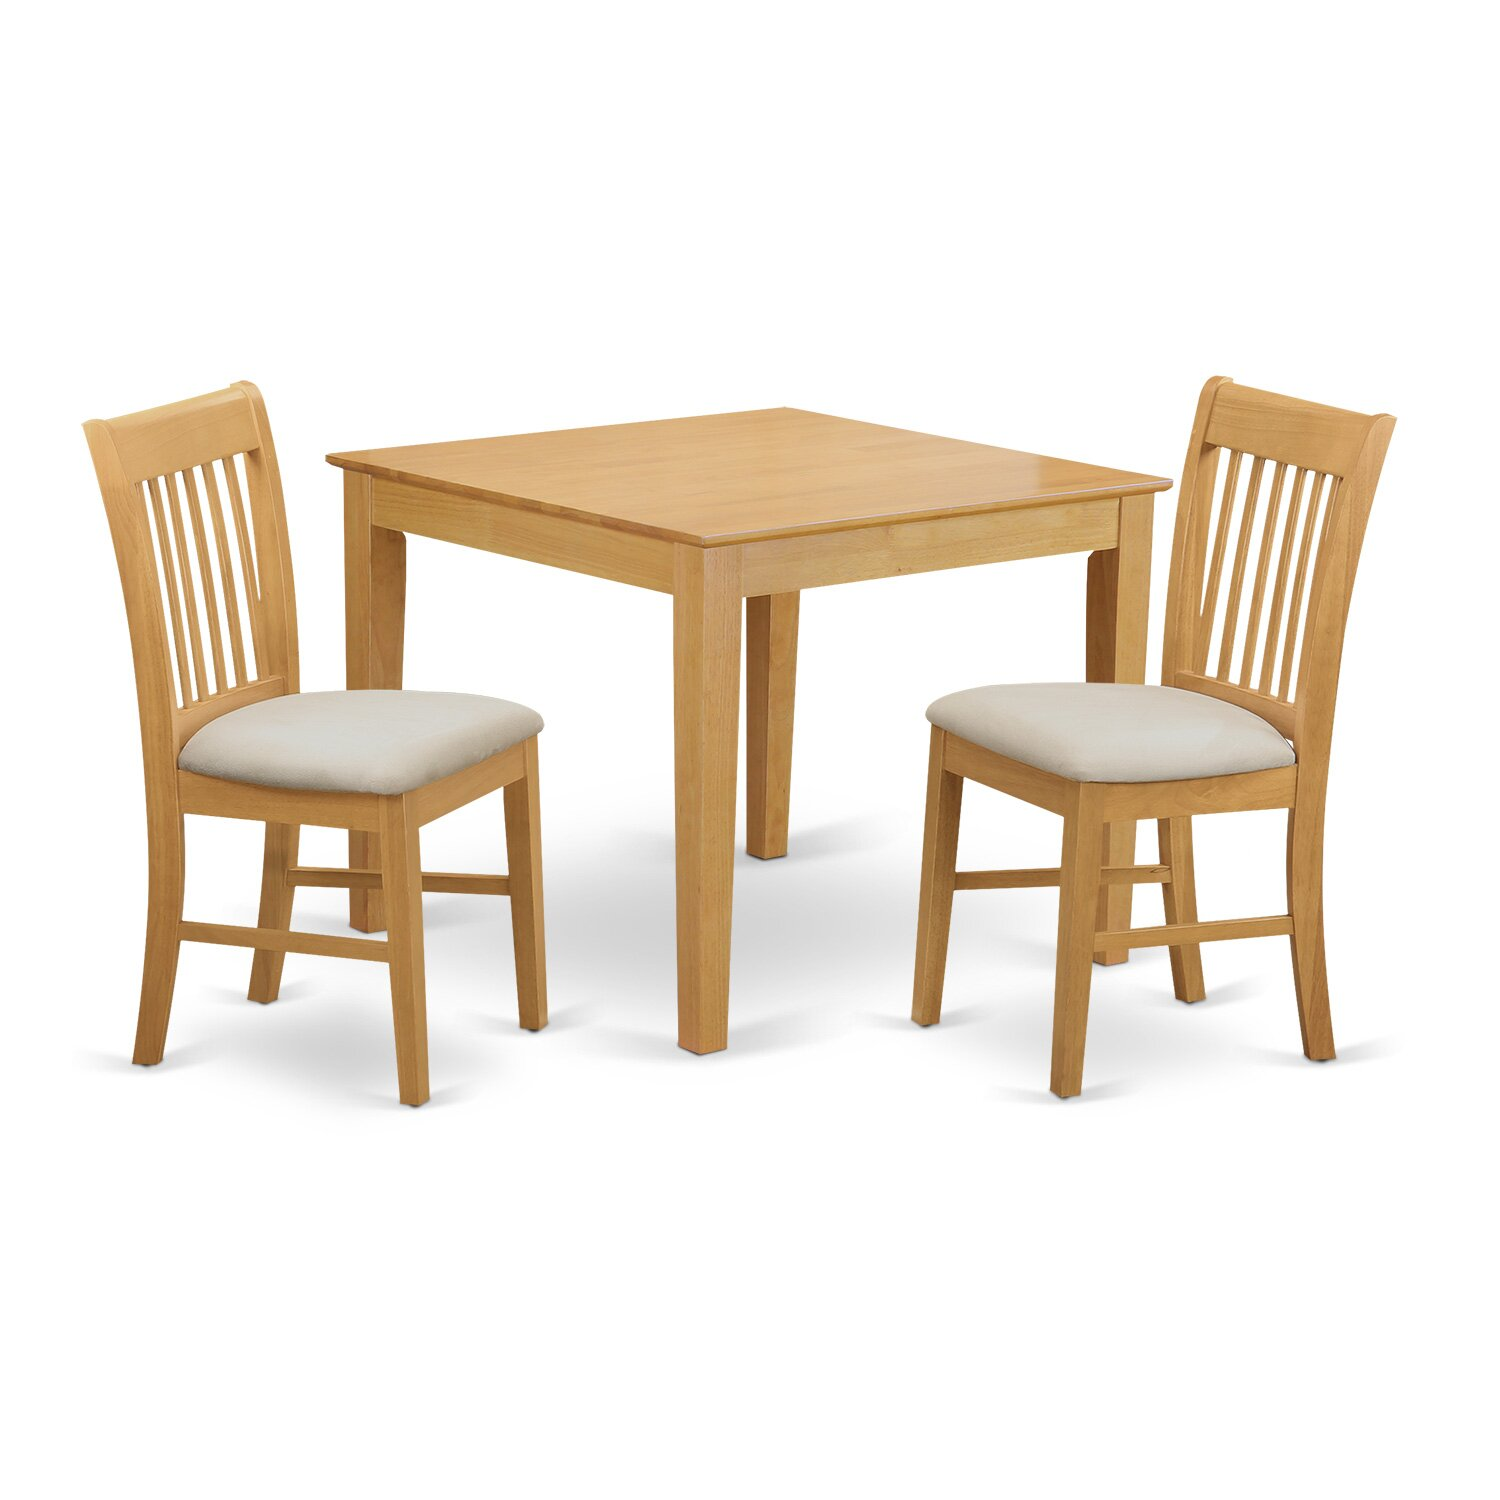 East west oxford 3 piece dining set reviews wayfair for Kitchen dinette sets